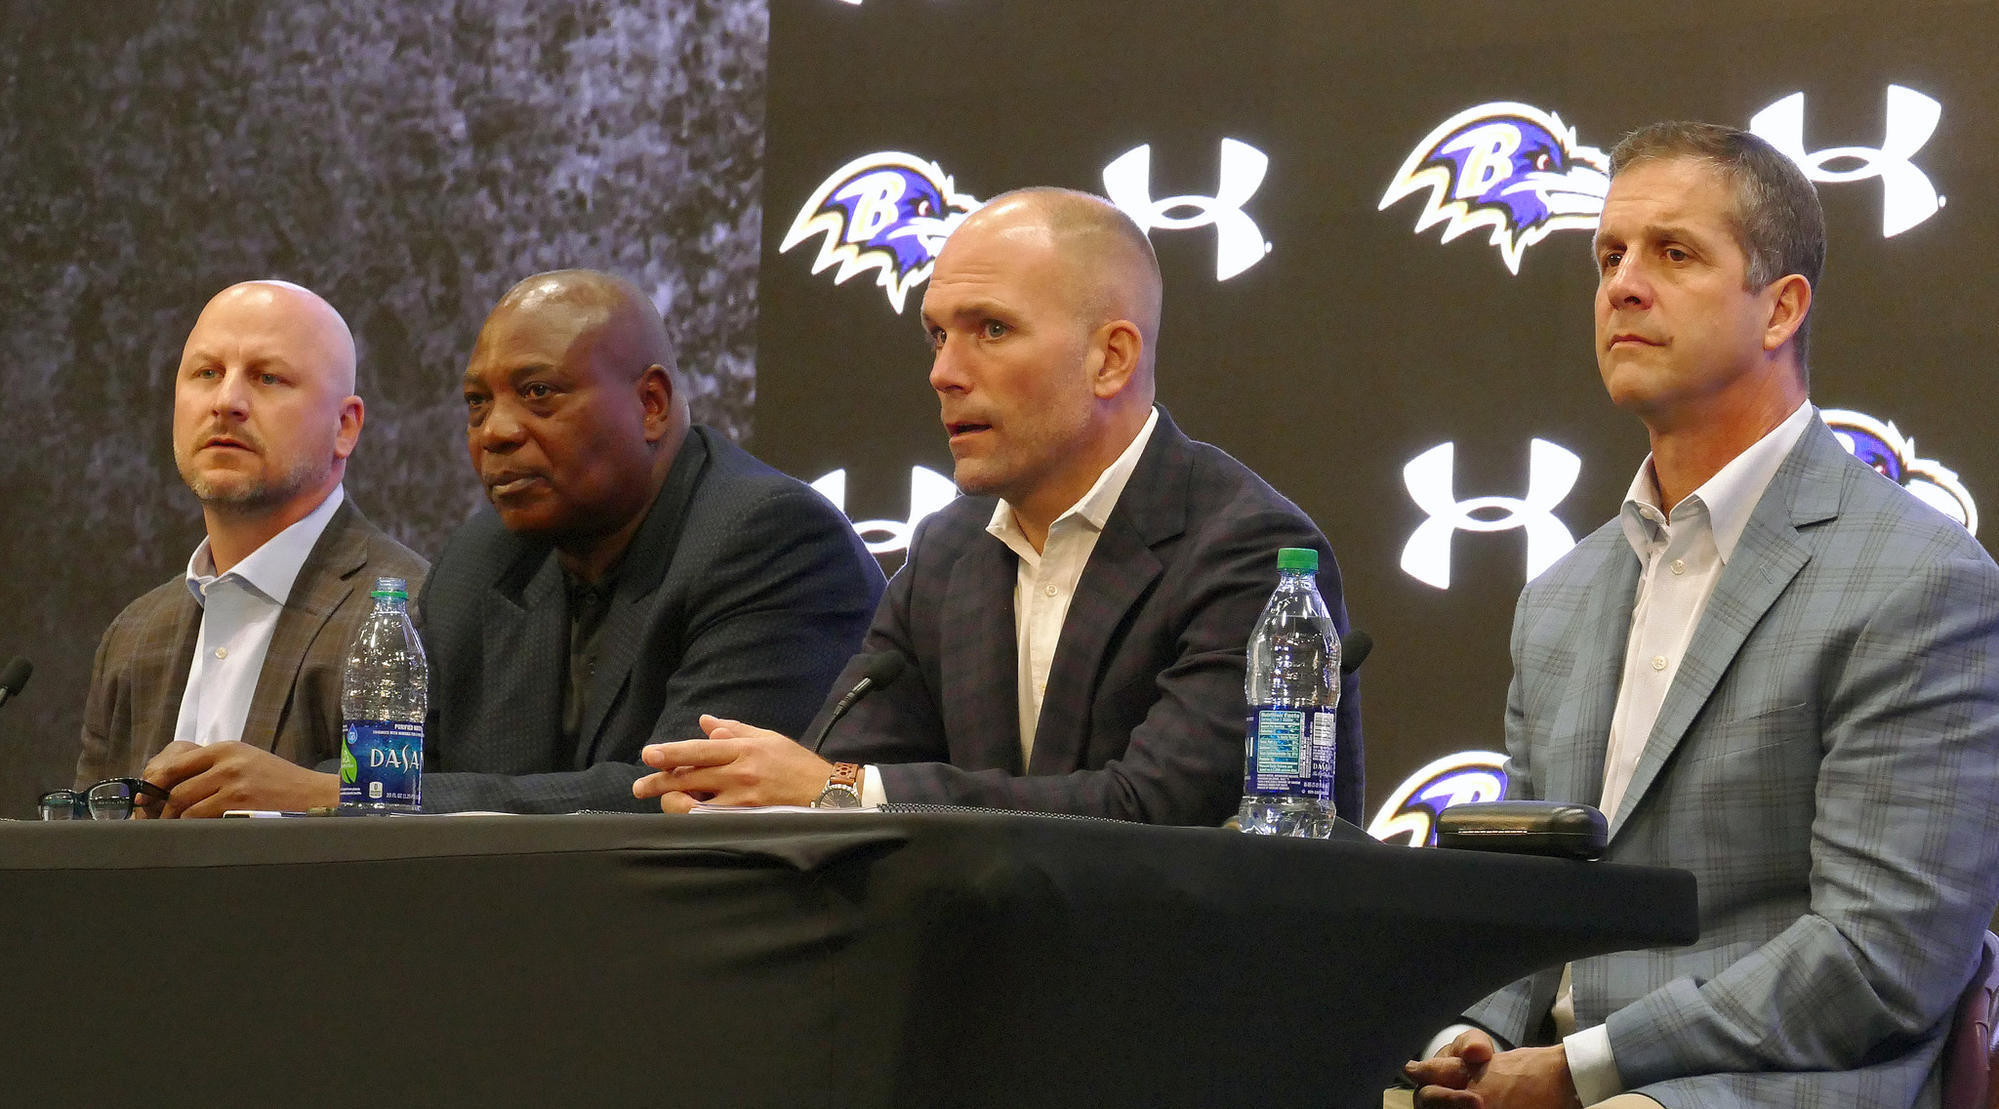 Bs-sp-ravens-draft-questions-20180422